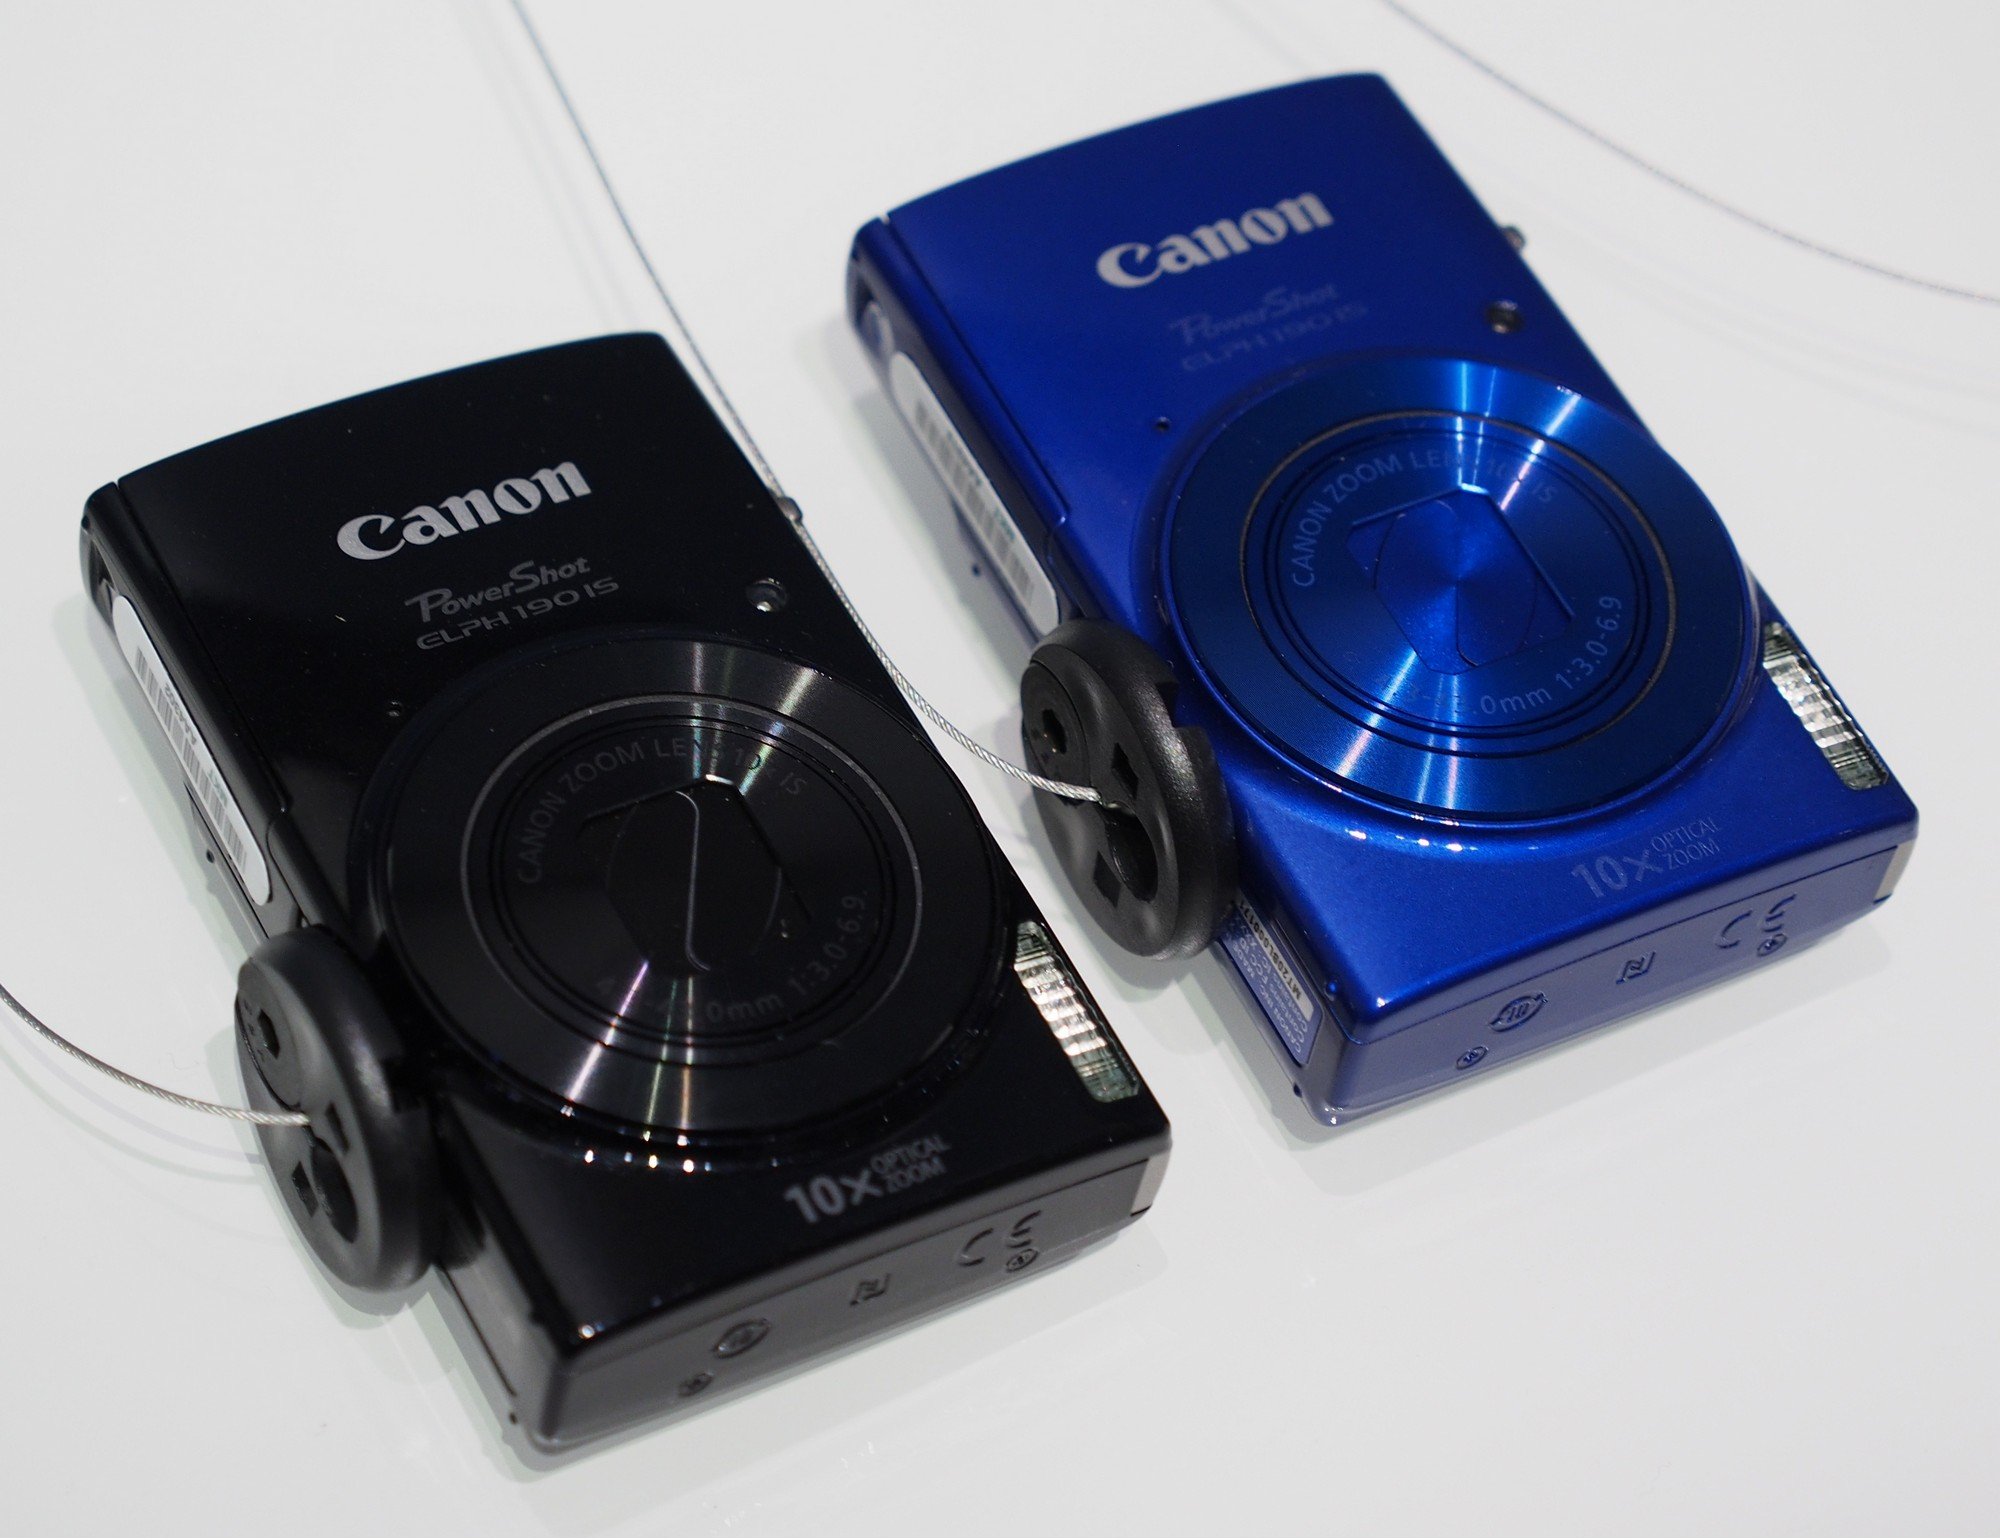 Hands On With The New Canon Ixus Compact Cameras Ephotozine